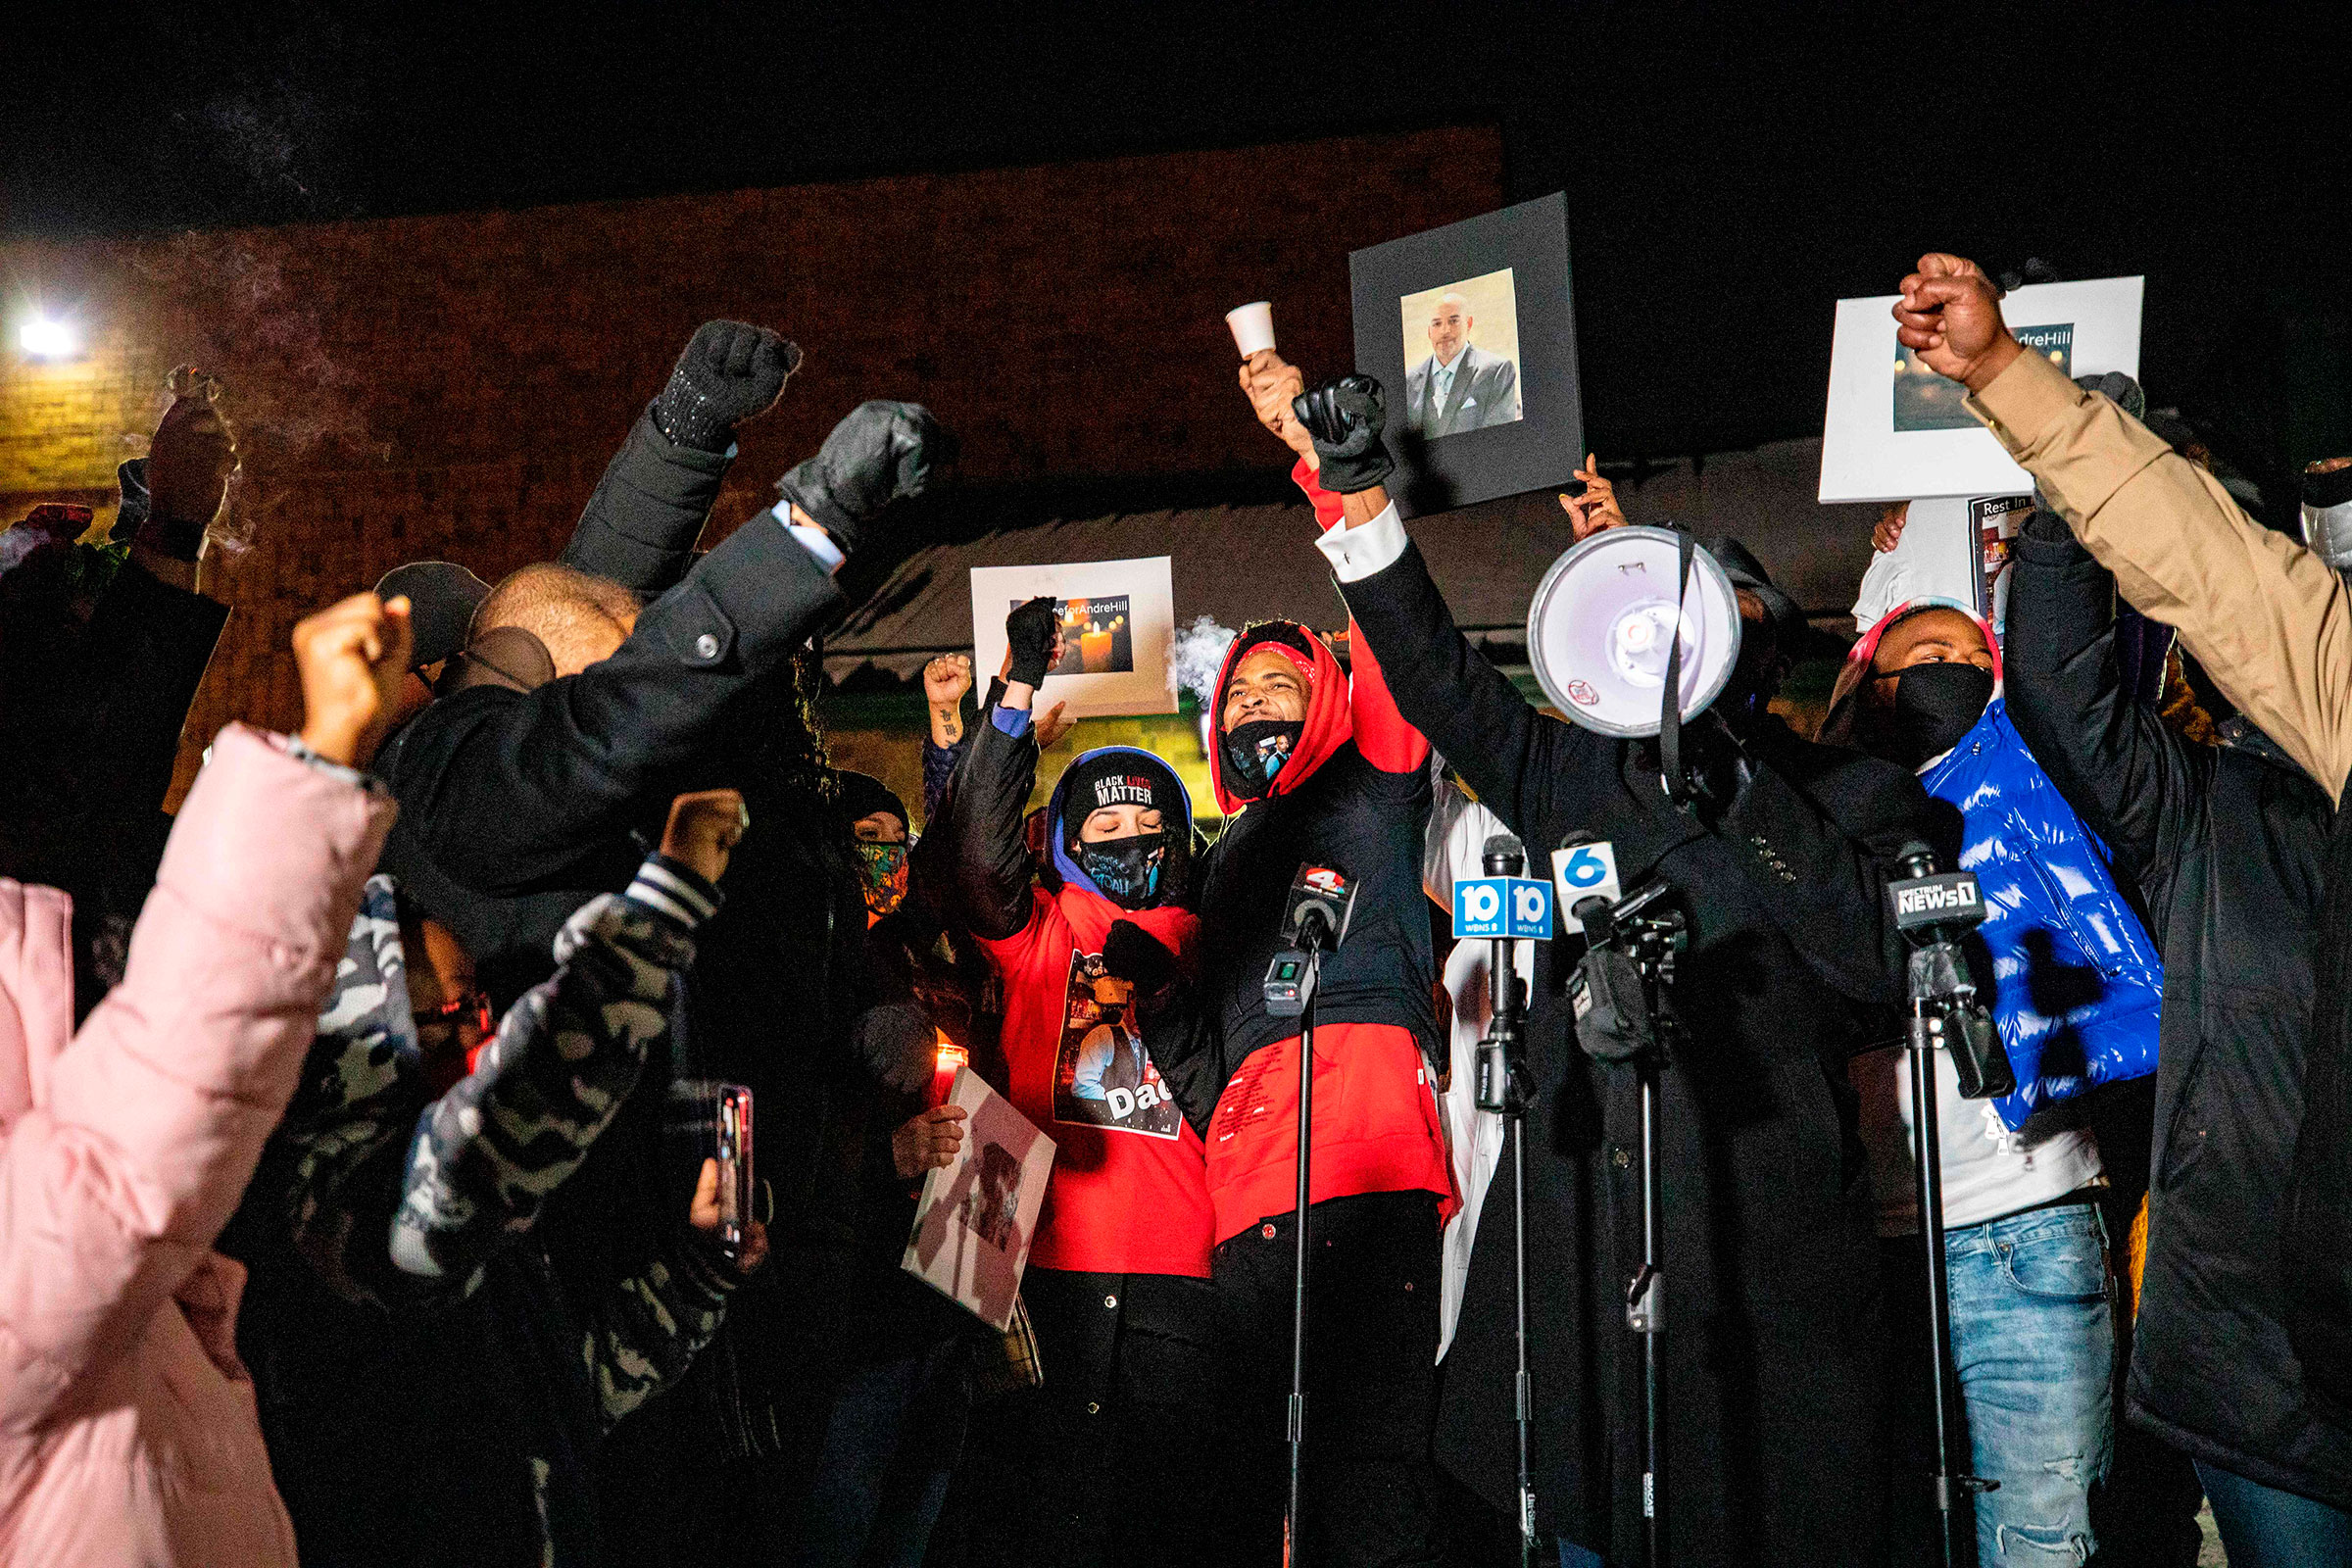 A crowd raises their fists around Karissa Hill during a candlelight vigil for her father Andre Hill, an unarmed Black man who was shot and killed by a Columbus police officer, in Columbus, Ohio on Dec. 26, 2020.